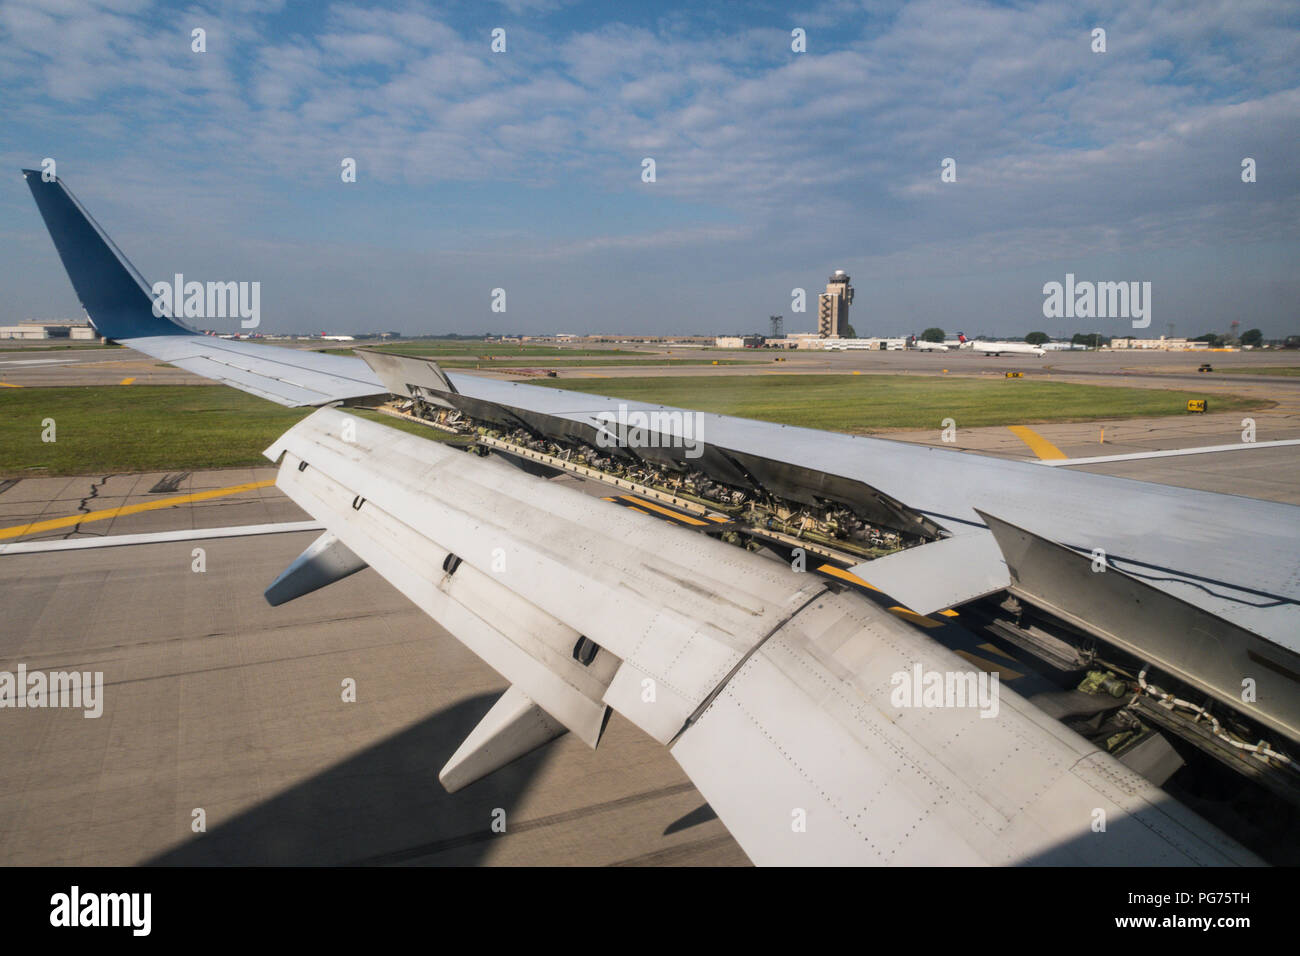 Aircraft Landing with Flaps Up, USA - Stock Image